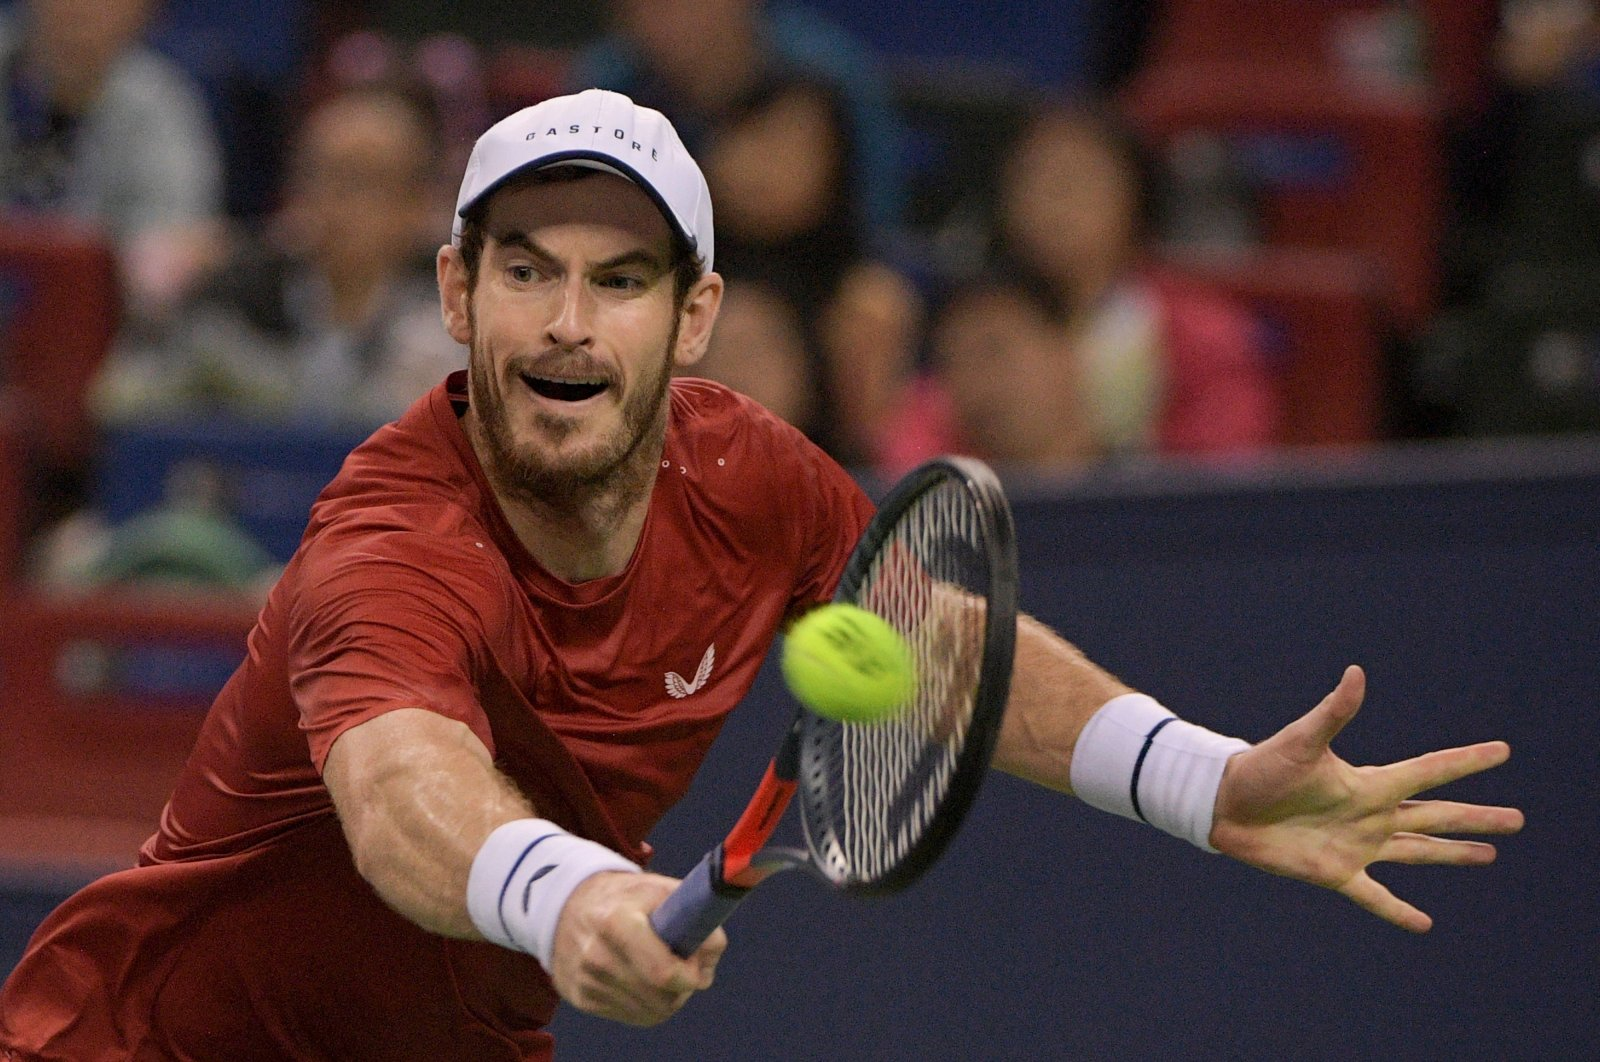 Andy Murray of Britain hits a return against Juan Ignacio Londero of Argentina during their first-round men's singles match at the Shanghai Masters tennis tournament in Shanghai, Oct. 7, 2019. (AFP Photo)